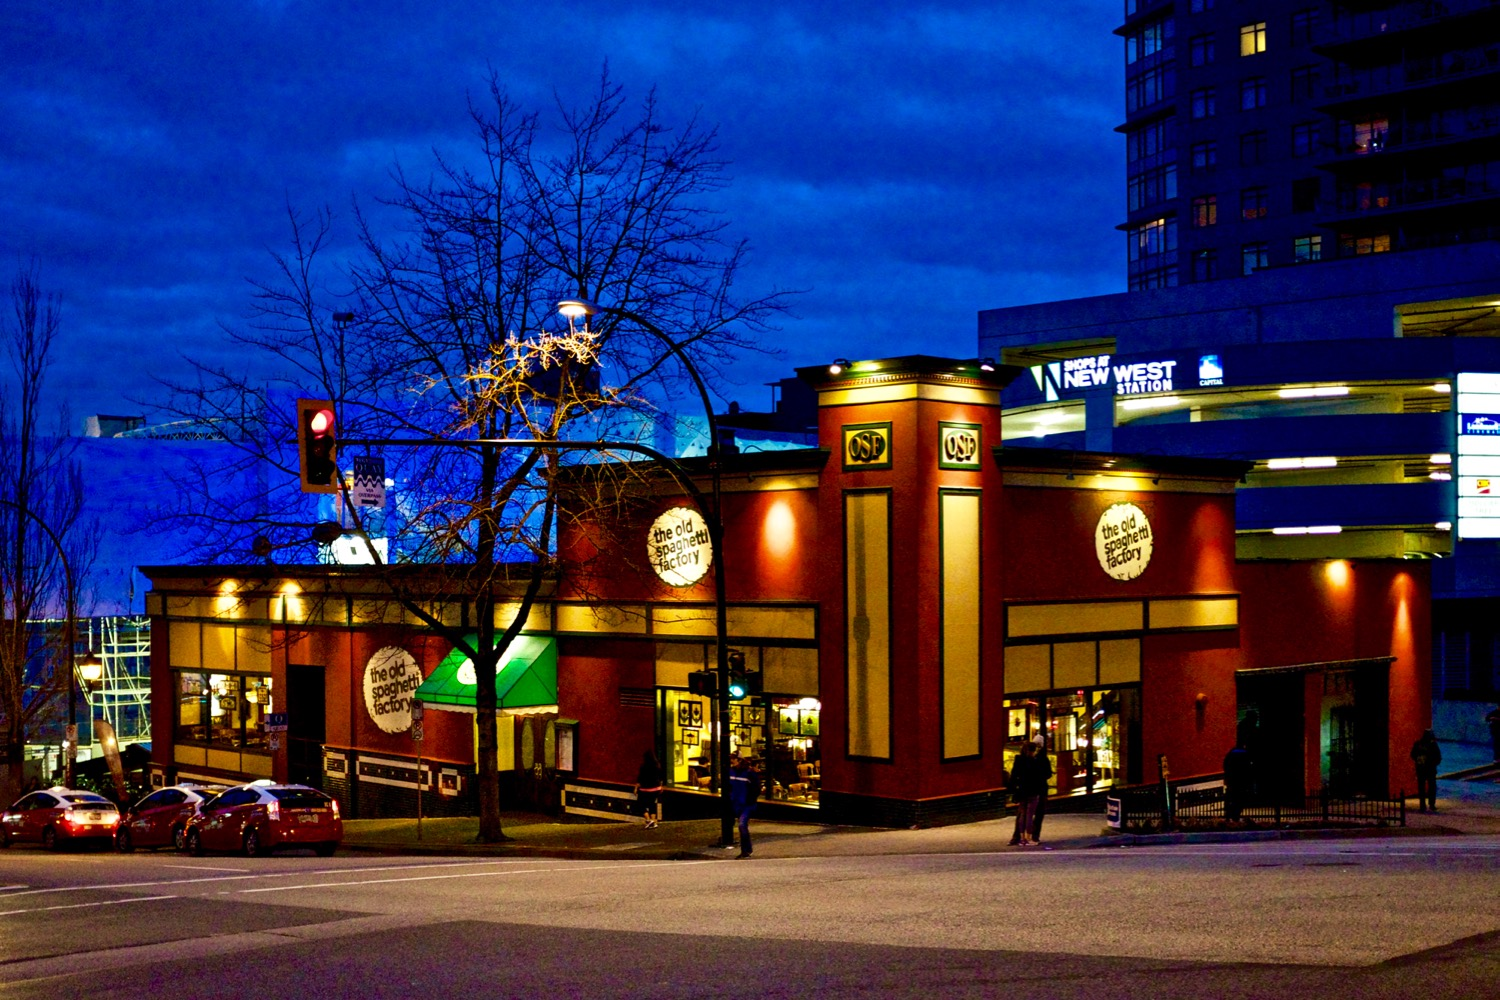 The Old Spaghetti Factory Restaurant - New Westminster  Click image to enlarge.